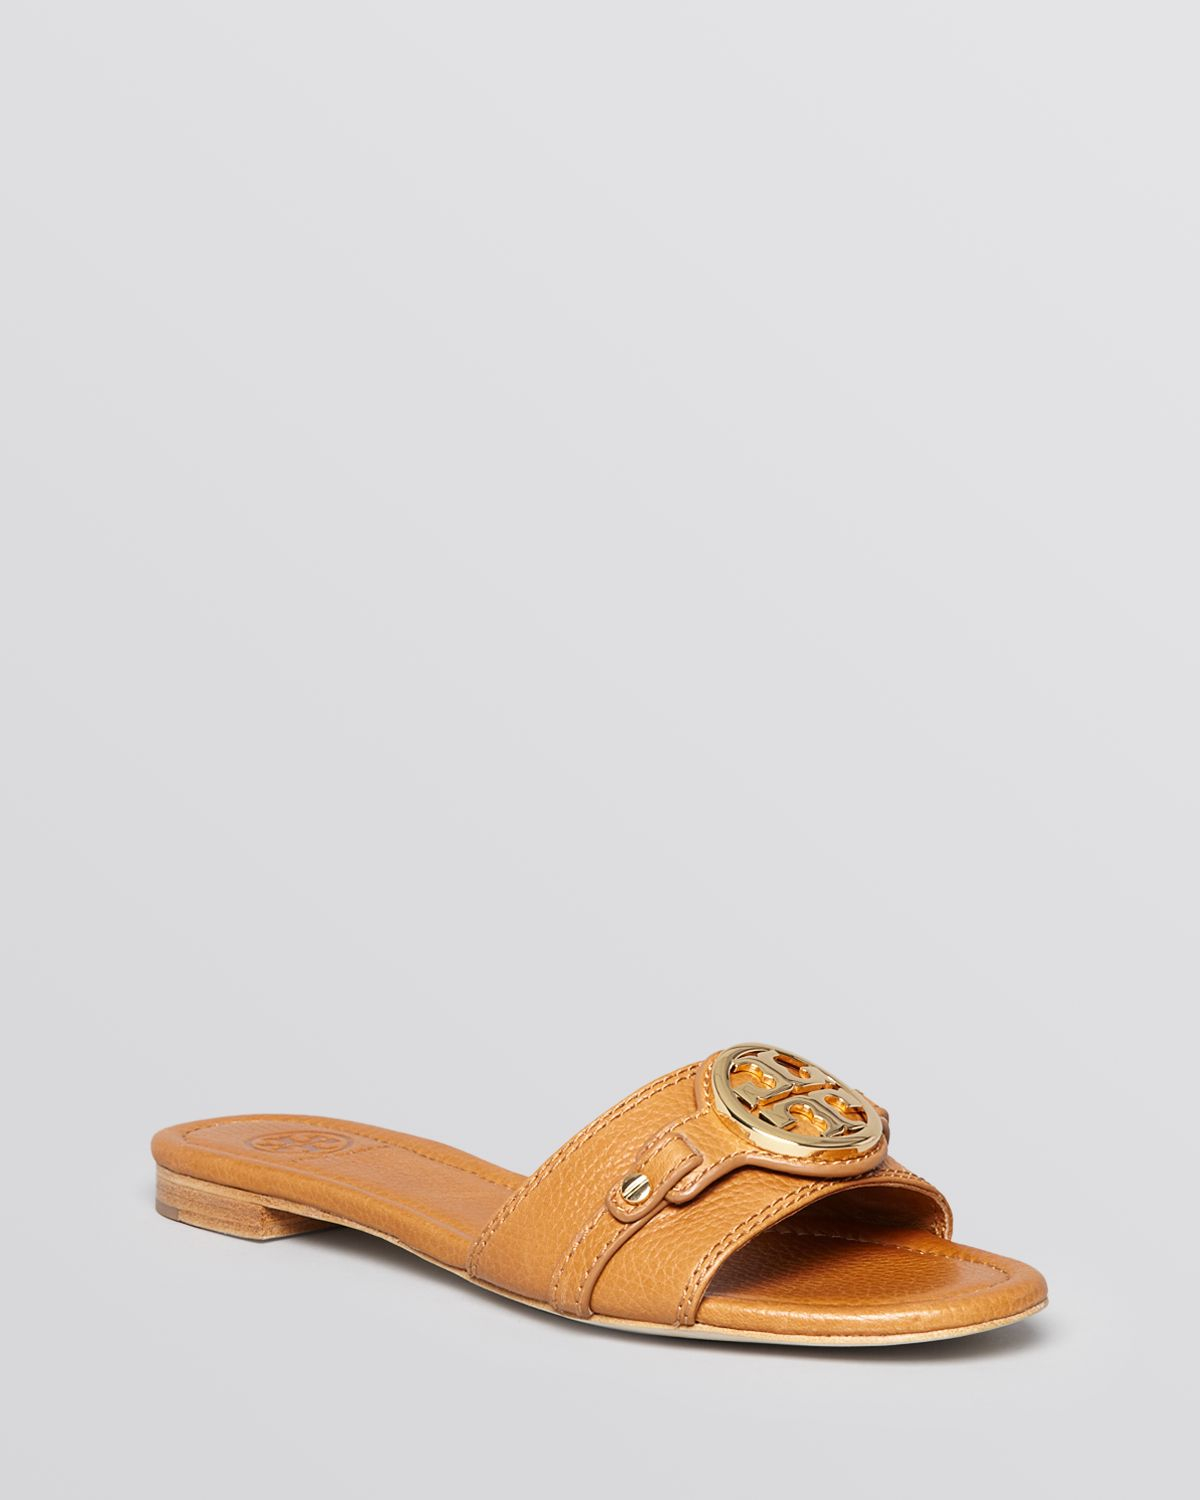 606b60a86654 ... clearance lyst tory burch flat slide sandals leticia in brown a0c75  d6cd0